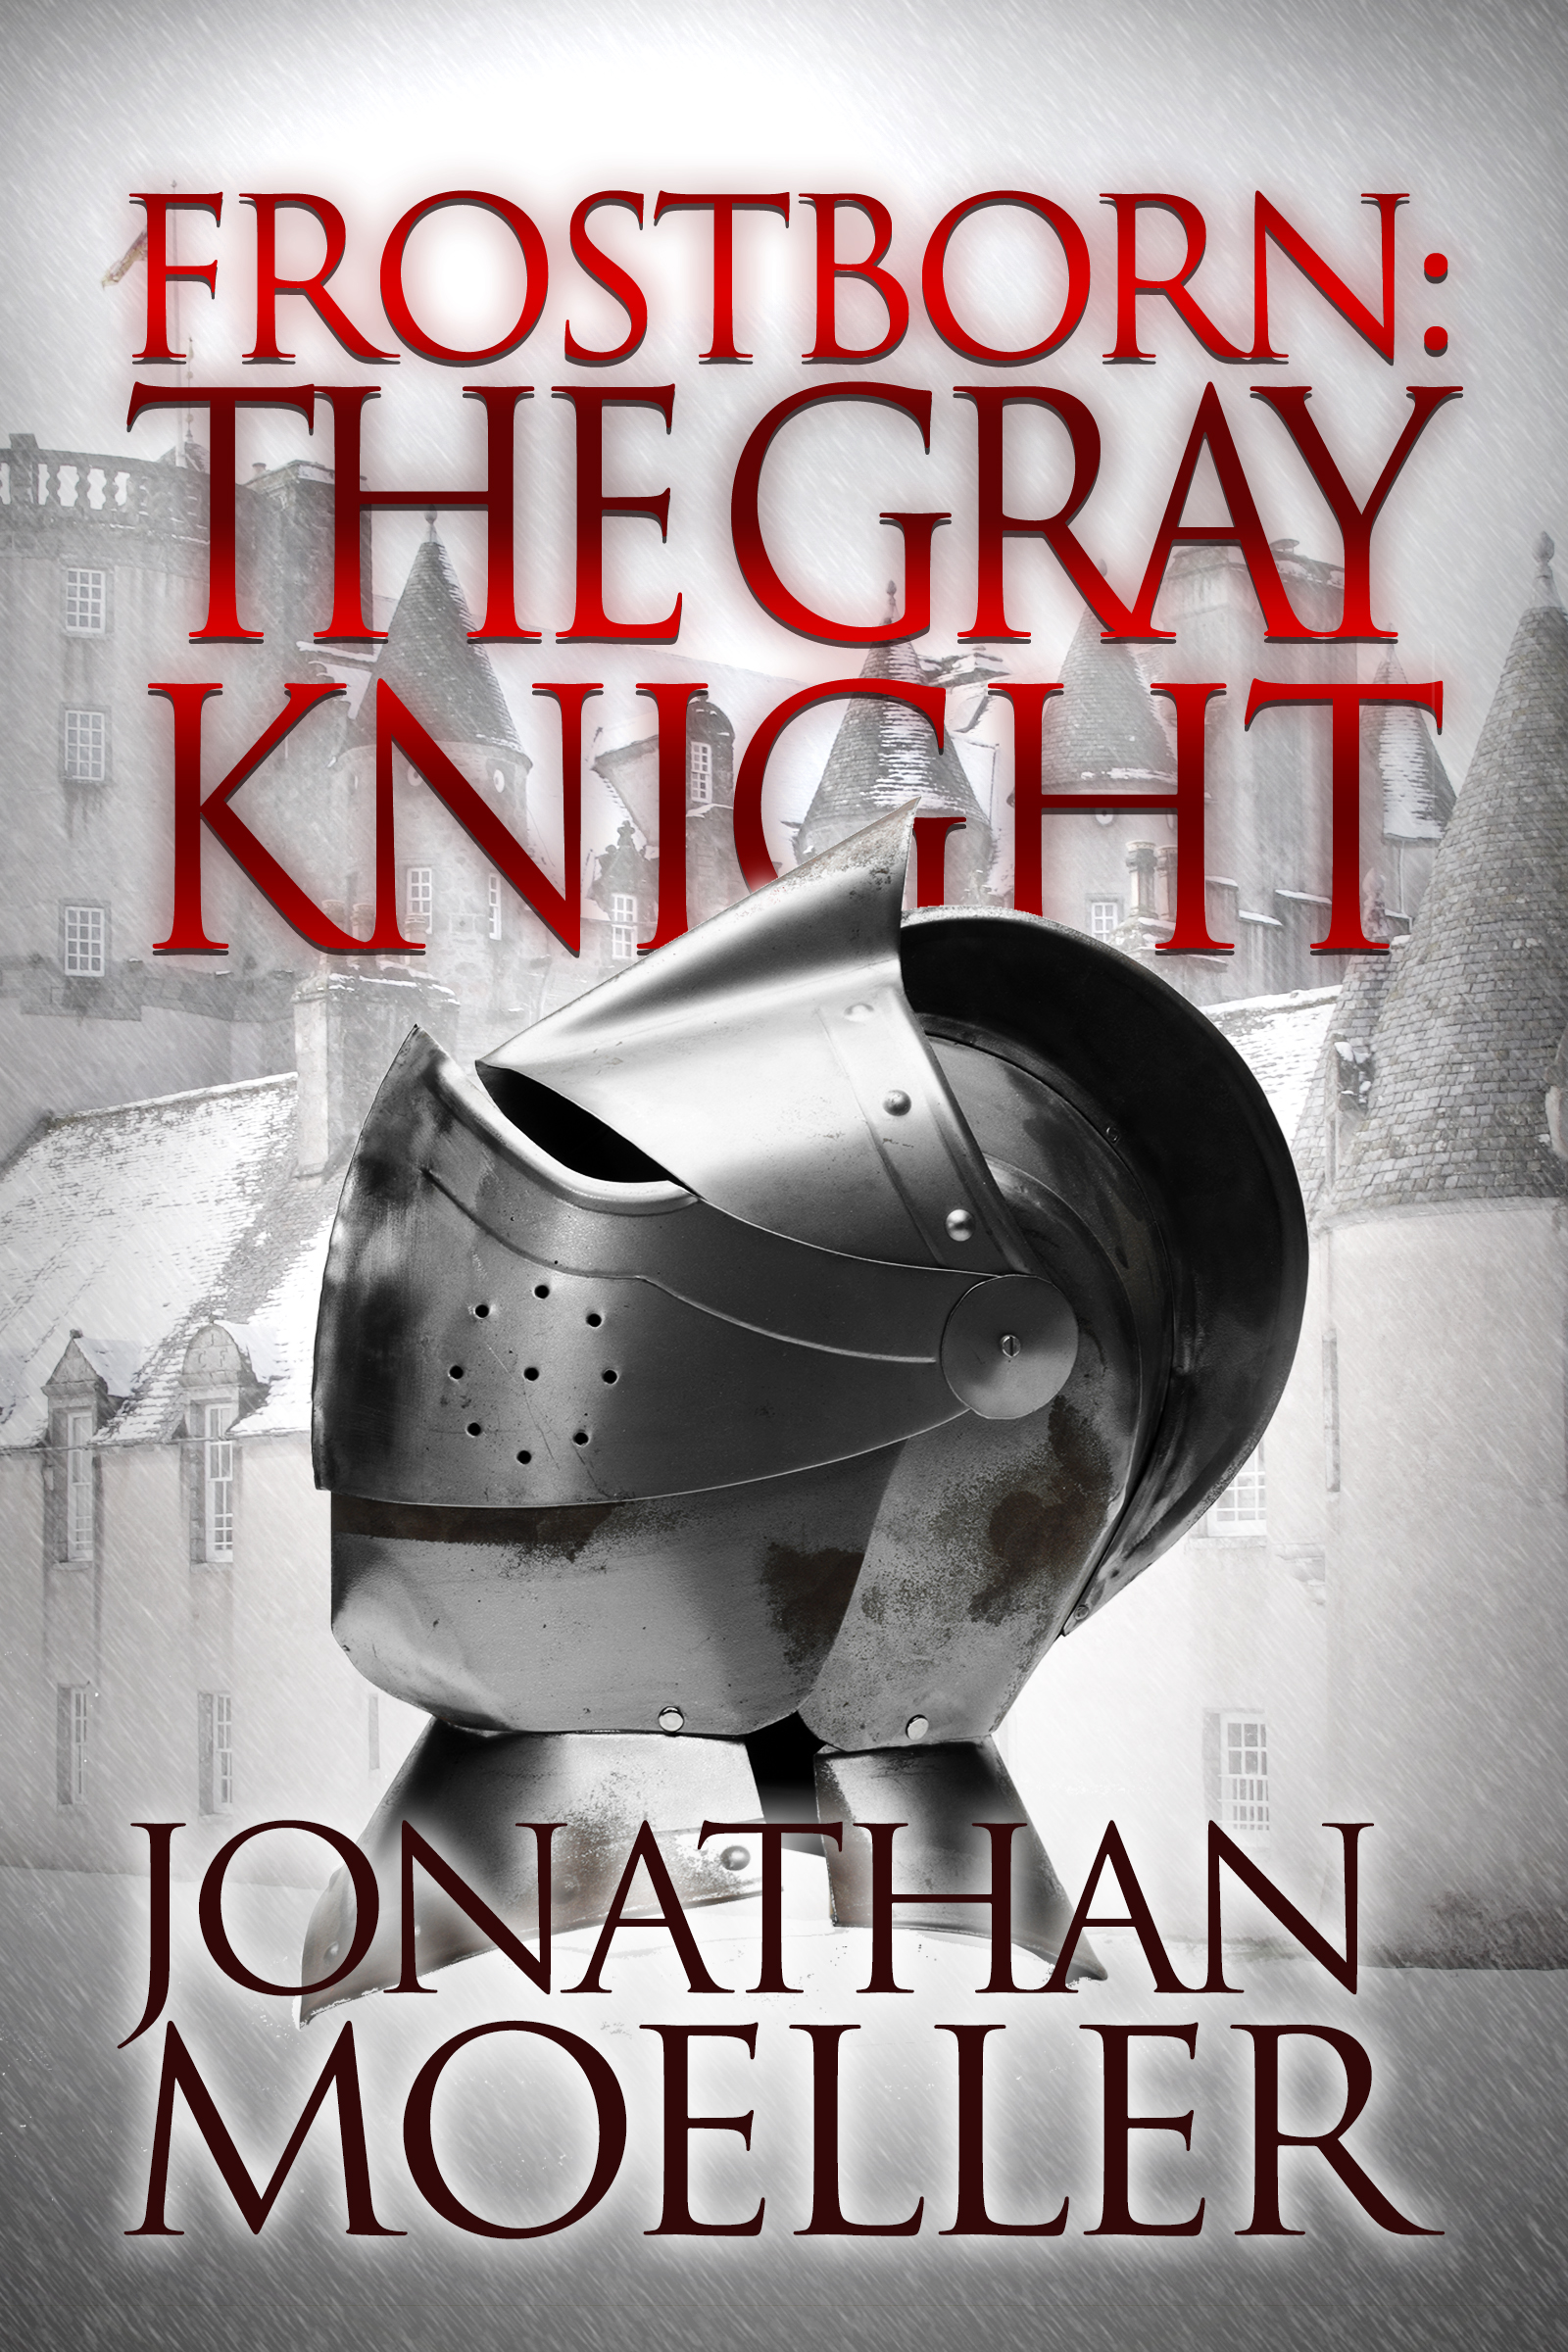 Frostborn: The Gray Knight (Frostborn #1) (sst-xxv)